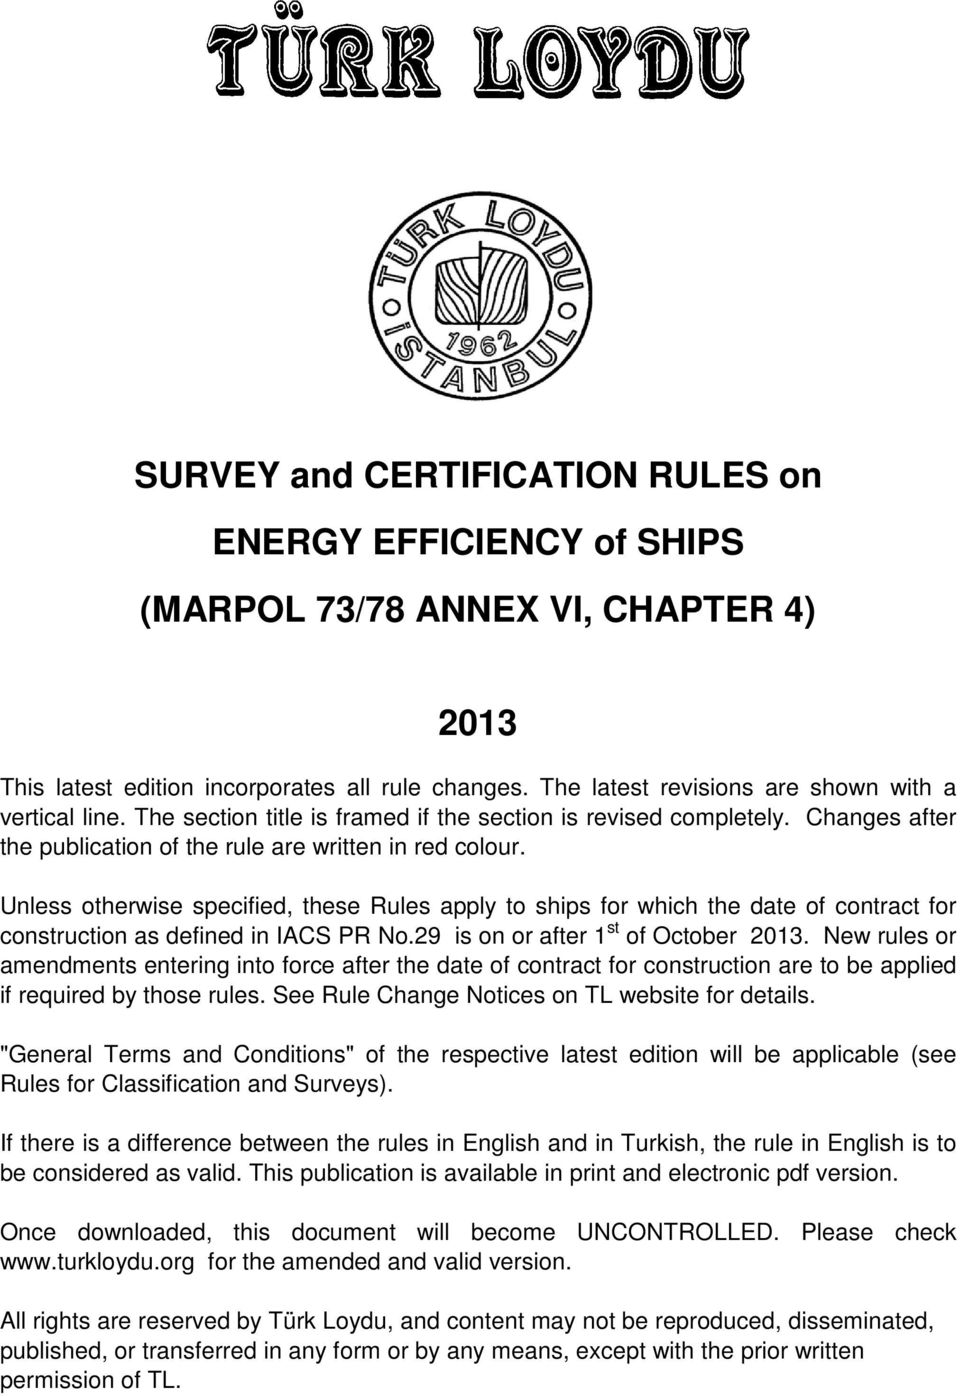 Survey And Certification Rules On Energy Efficiency Of Ships Marpol